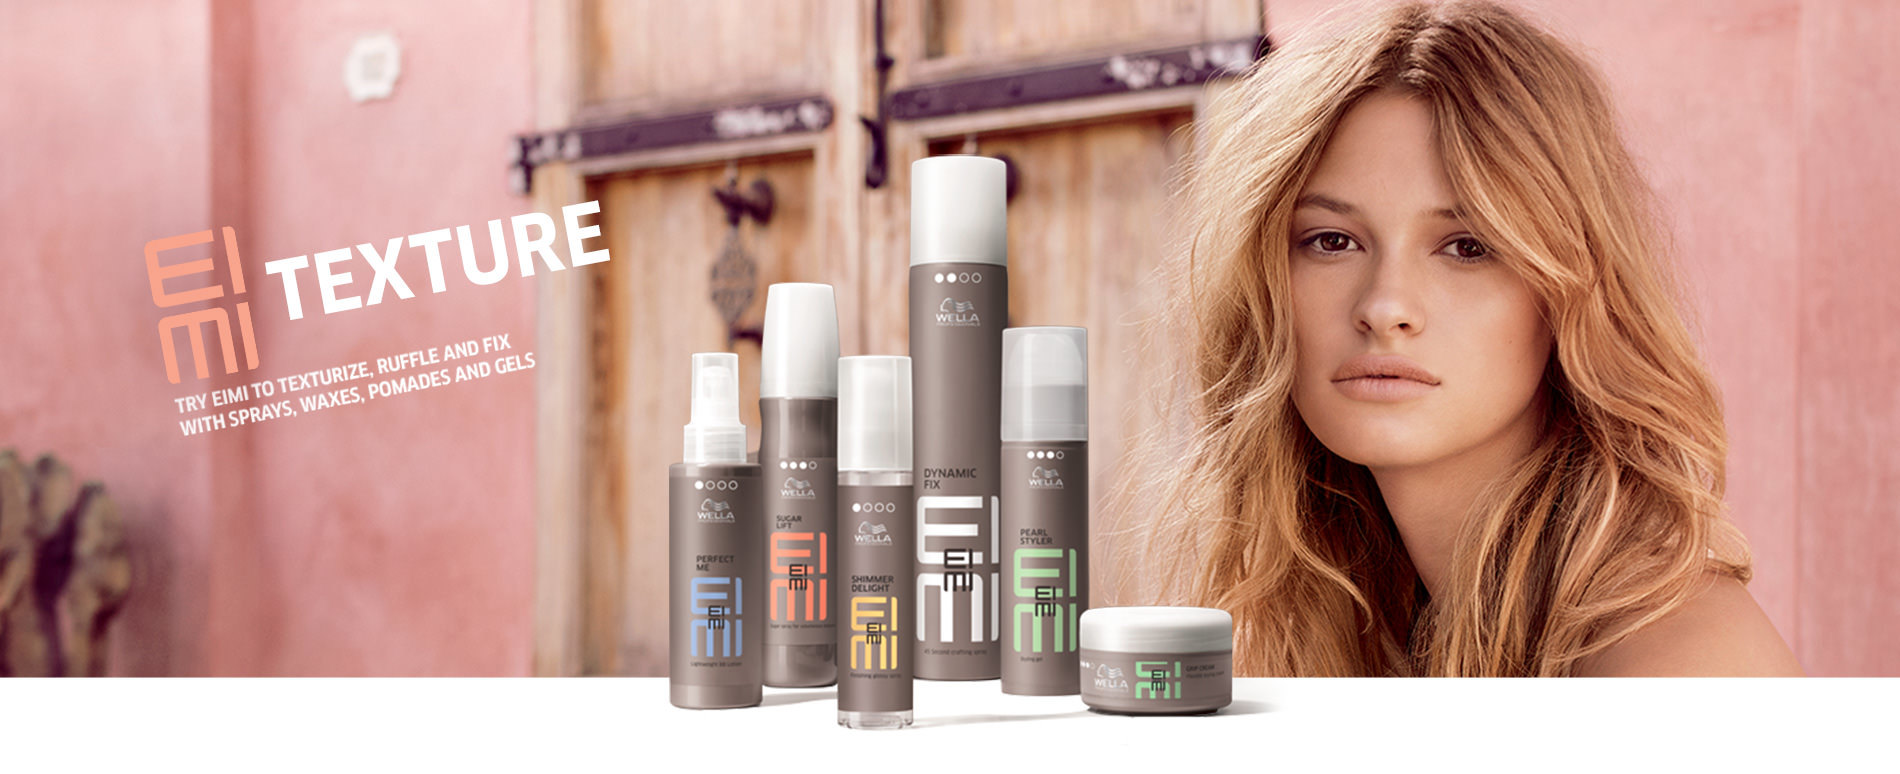 wella texure product